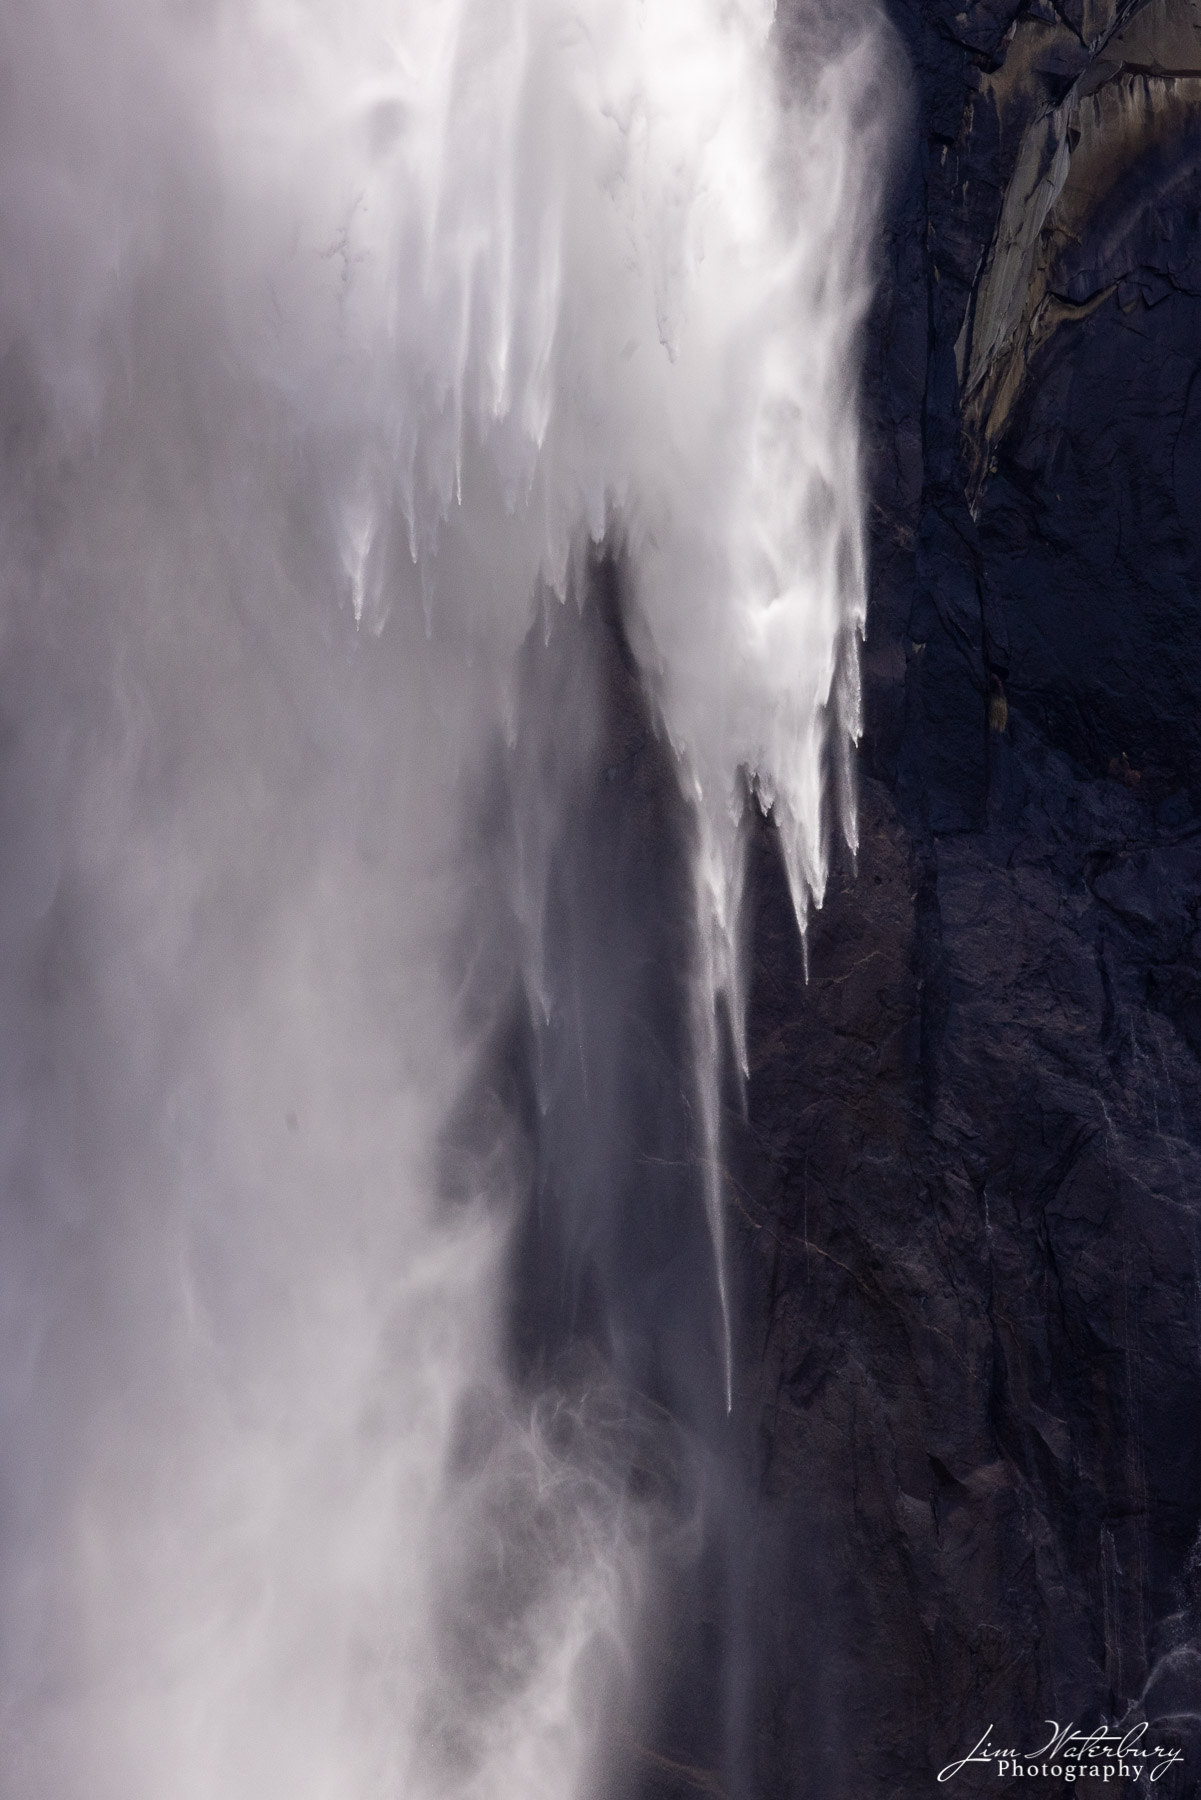 Detail of water and spray descending from Bridel Veil Falls, photographed from across the Merced River